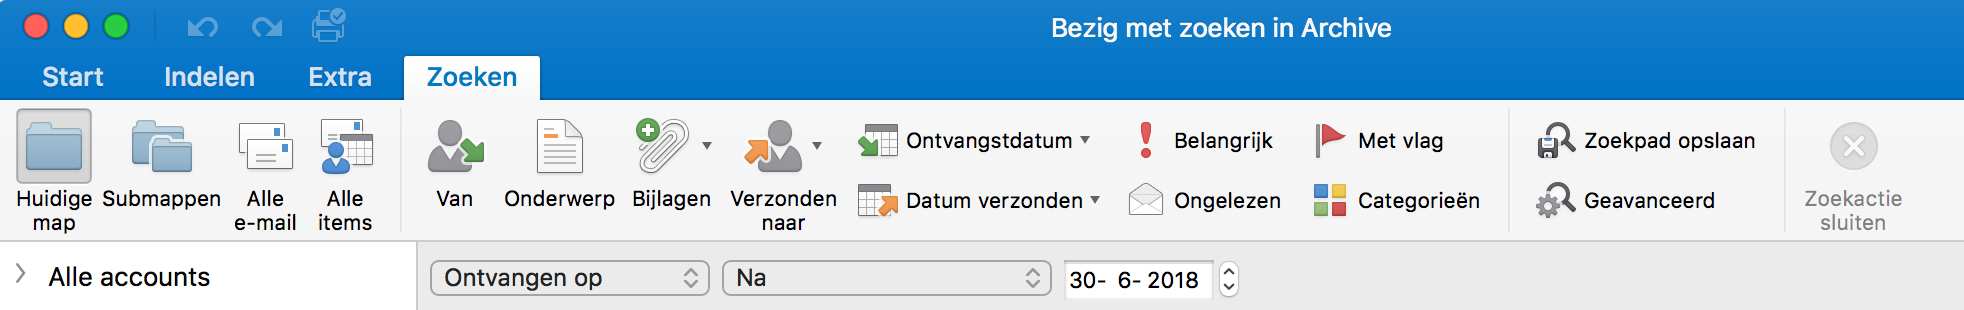 Zoekopties in de desktopversie van Outlook